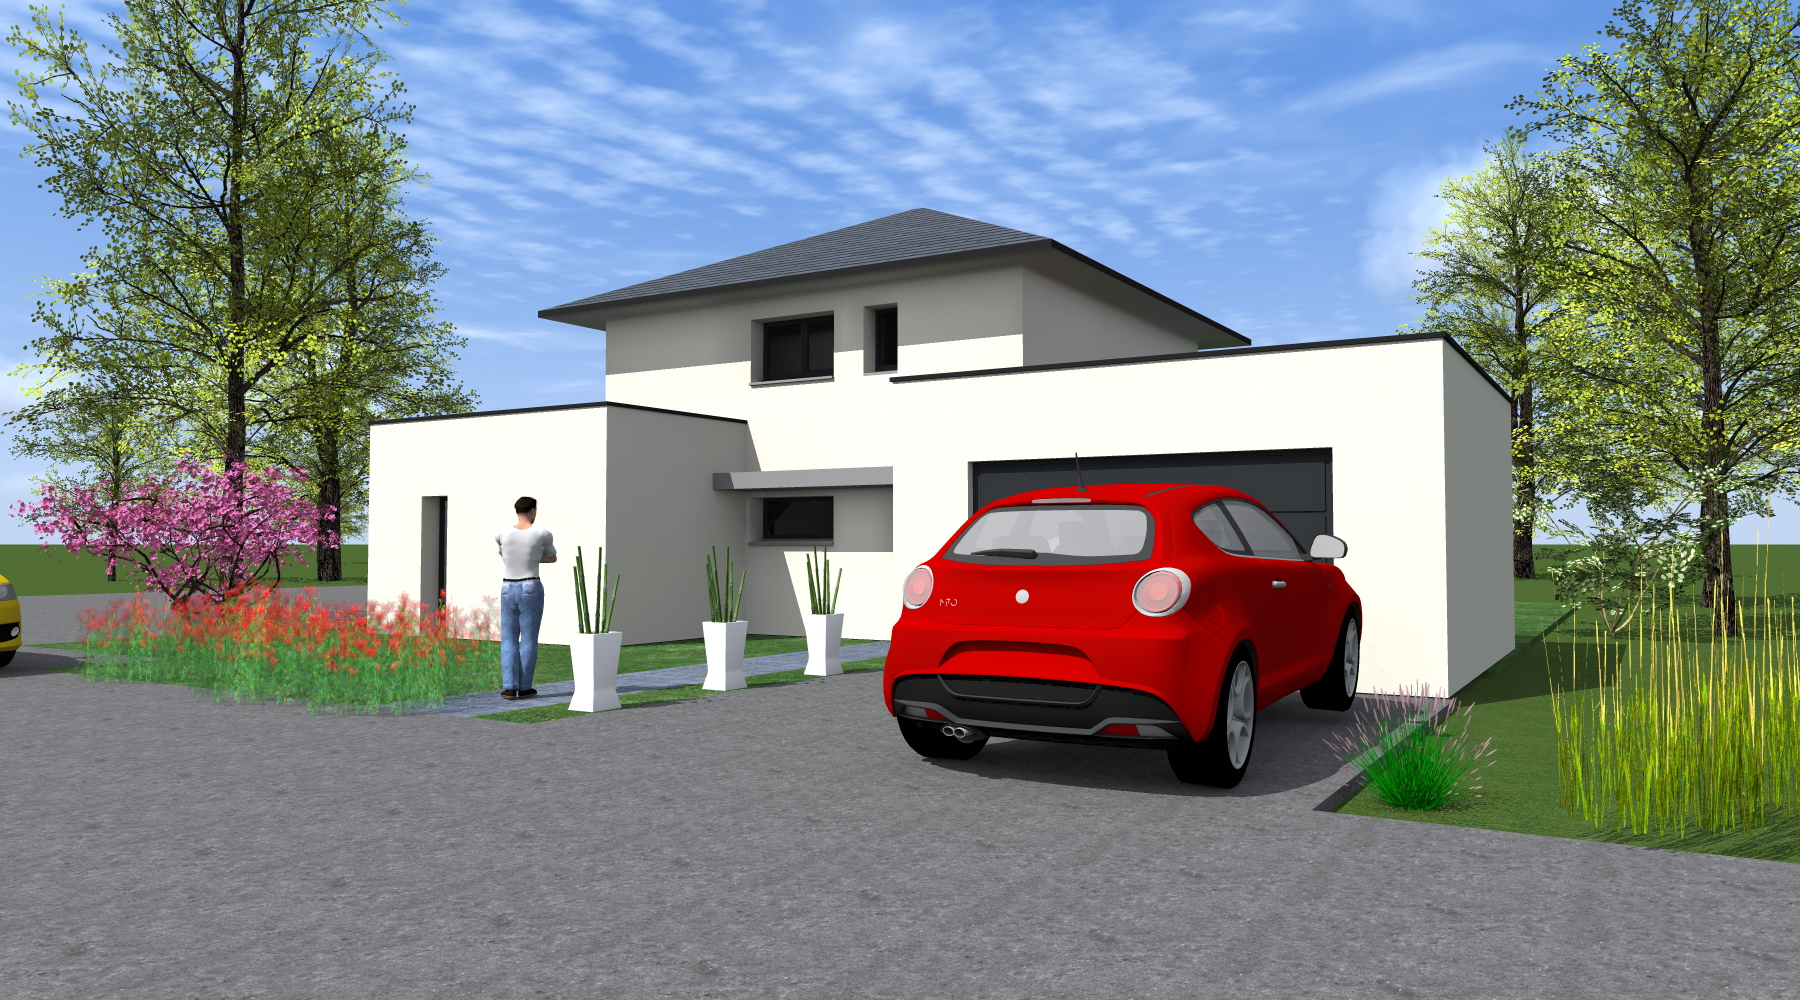 toiture garage 1 pente top carport simple toit plat pour voiture en bois trait with toiture. Black Bedroom Furniture Sets. Home Design Ideas